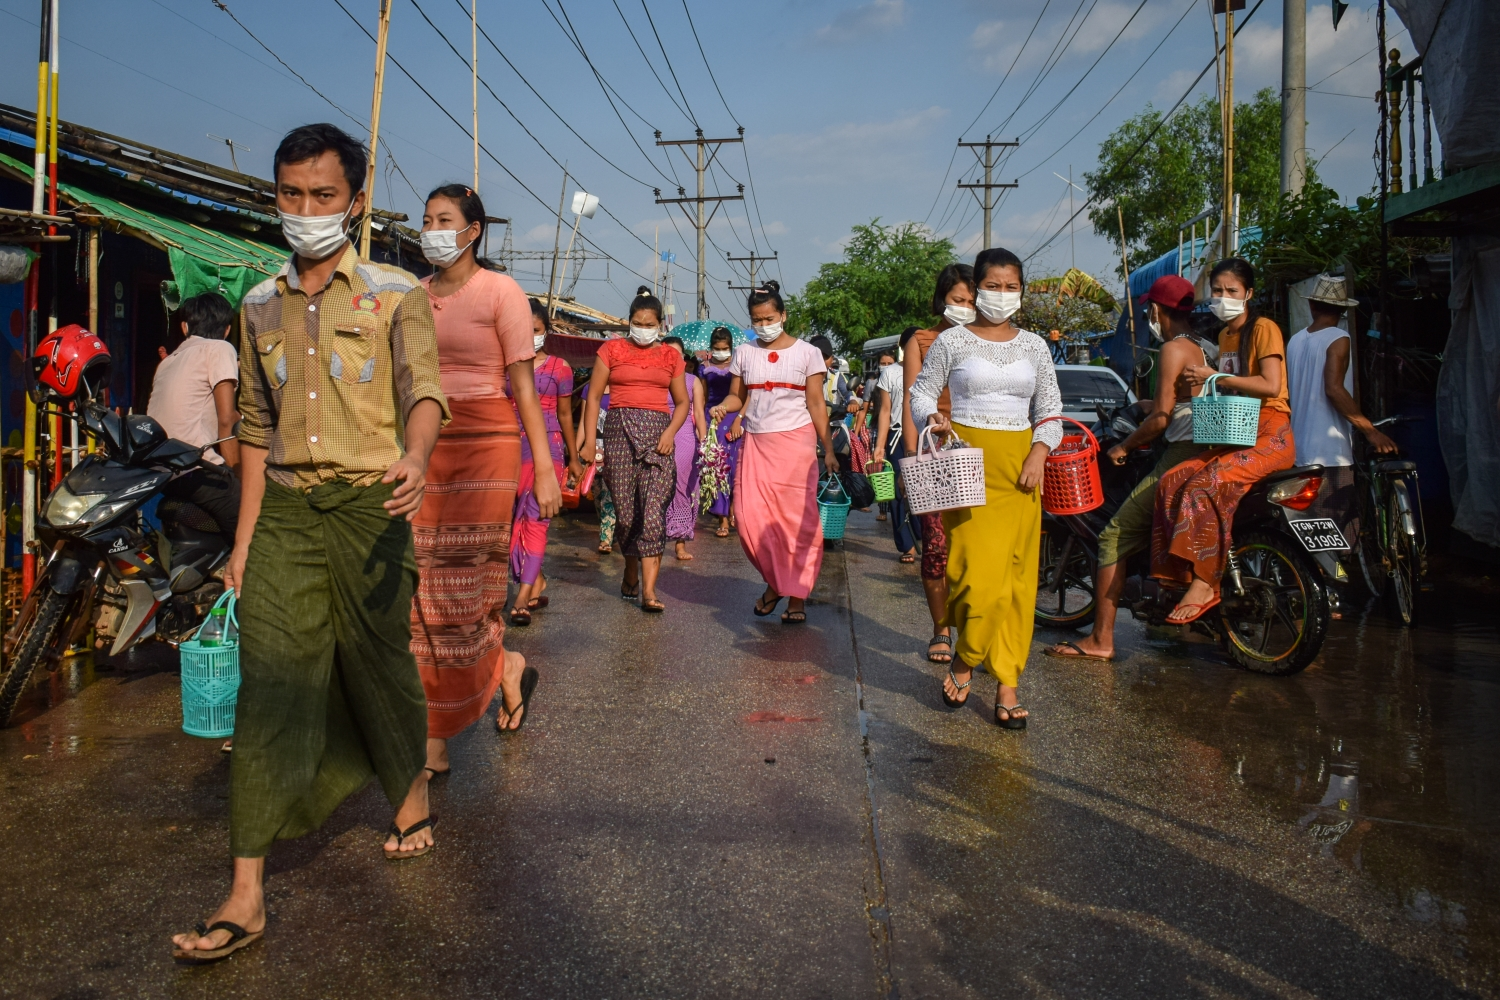 Yangon factory workers walk to work on May 16. The industrial workforce of the city largely consists of migrants from poor rural areas, many of whom are vulnerable to disenfranchisement because they are registered to vote elsewhere. (Kyaw Lin Htoon | Frontier)